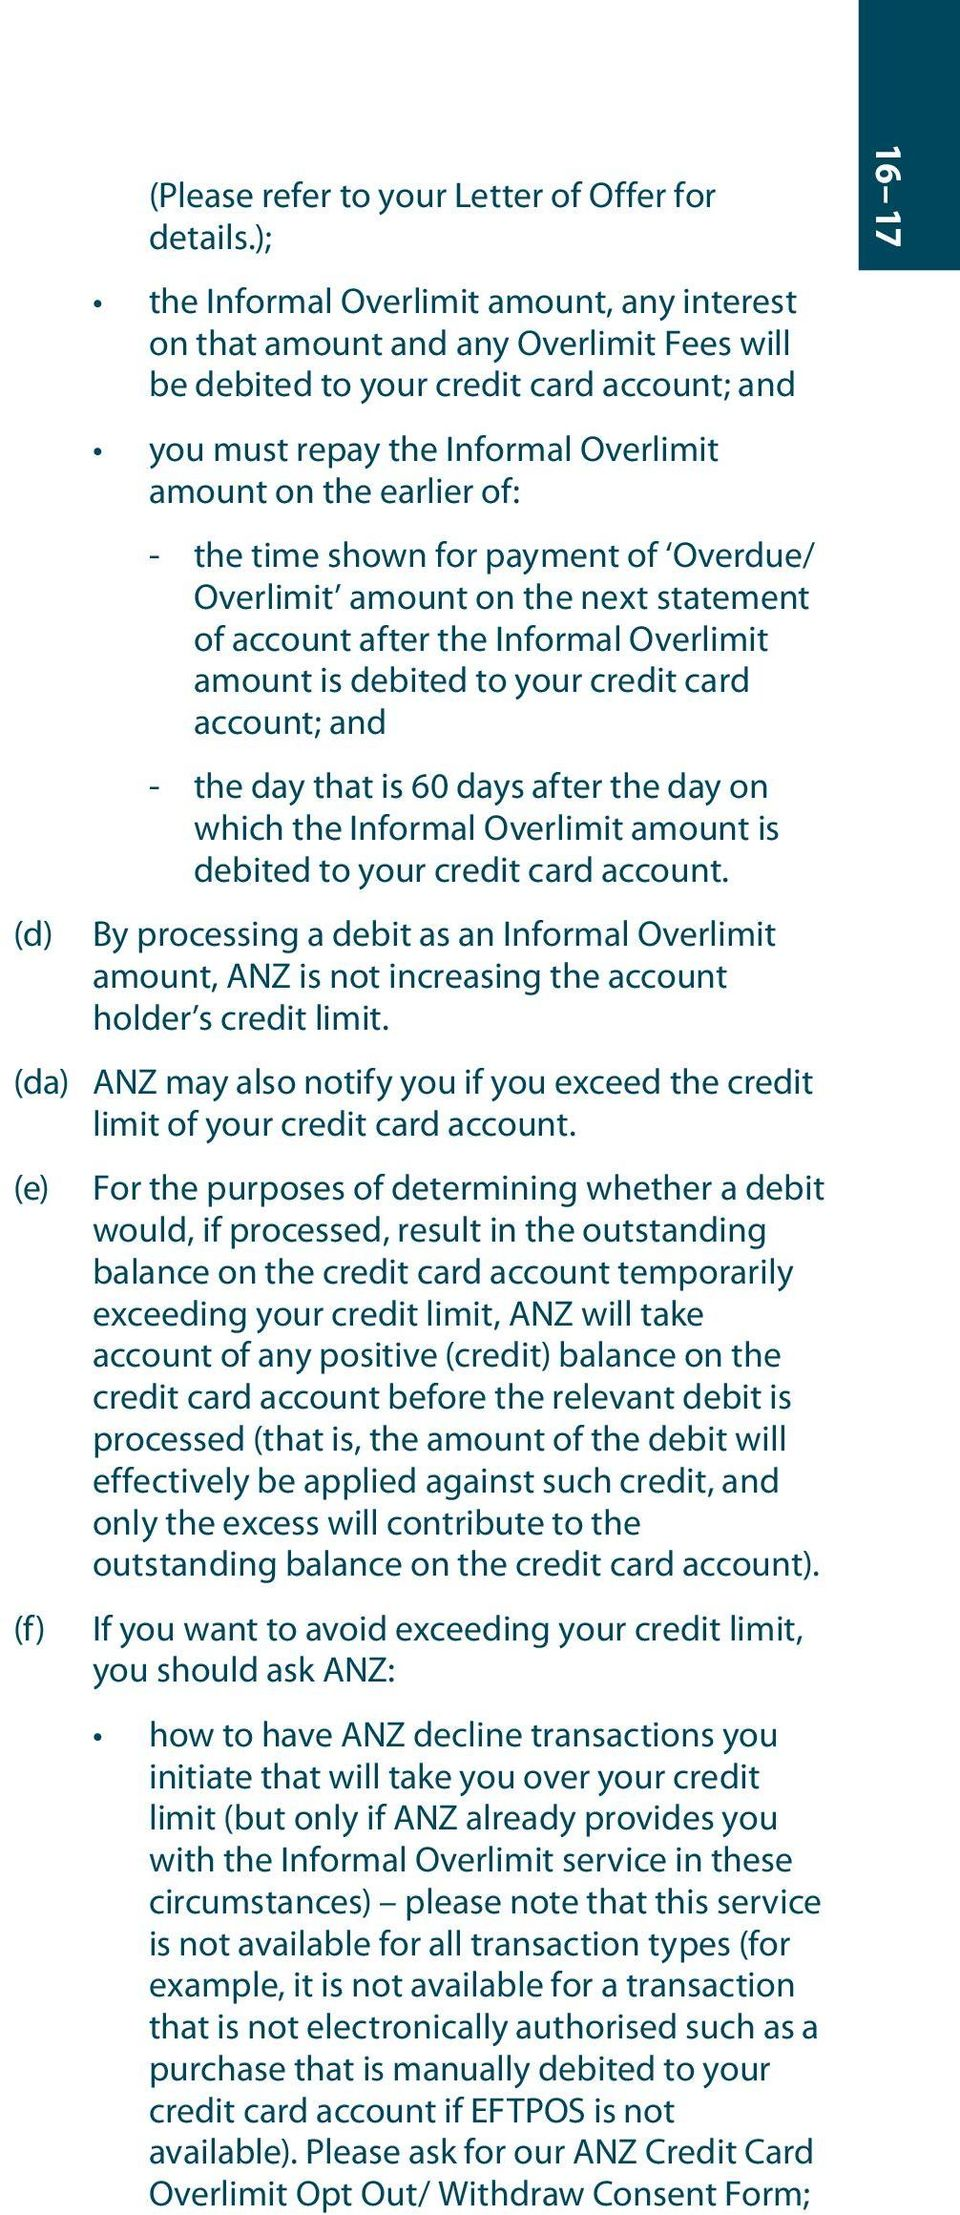 the time shown for payment of Overdue/ Overlimit amount on the next statement of account after the Informal Overlimit amount is debited to your credit card account; and - the day that is 60 days